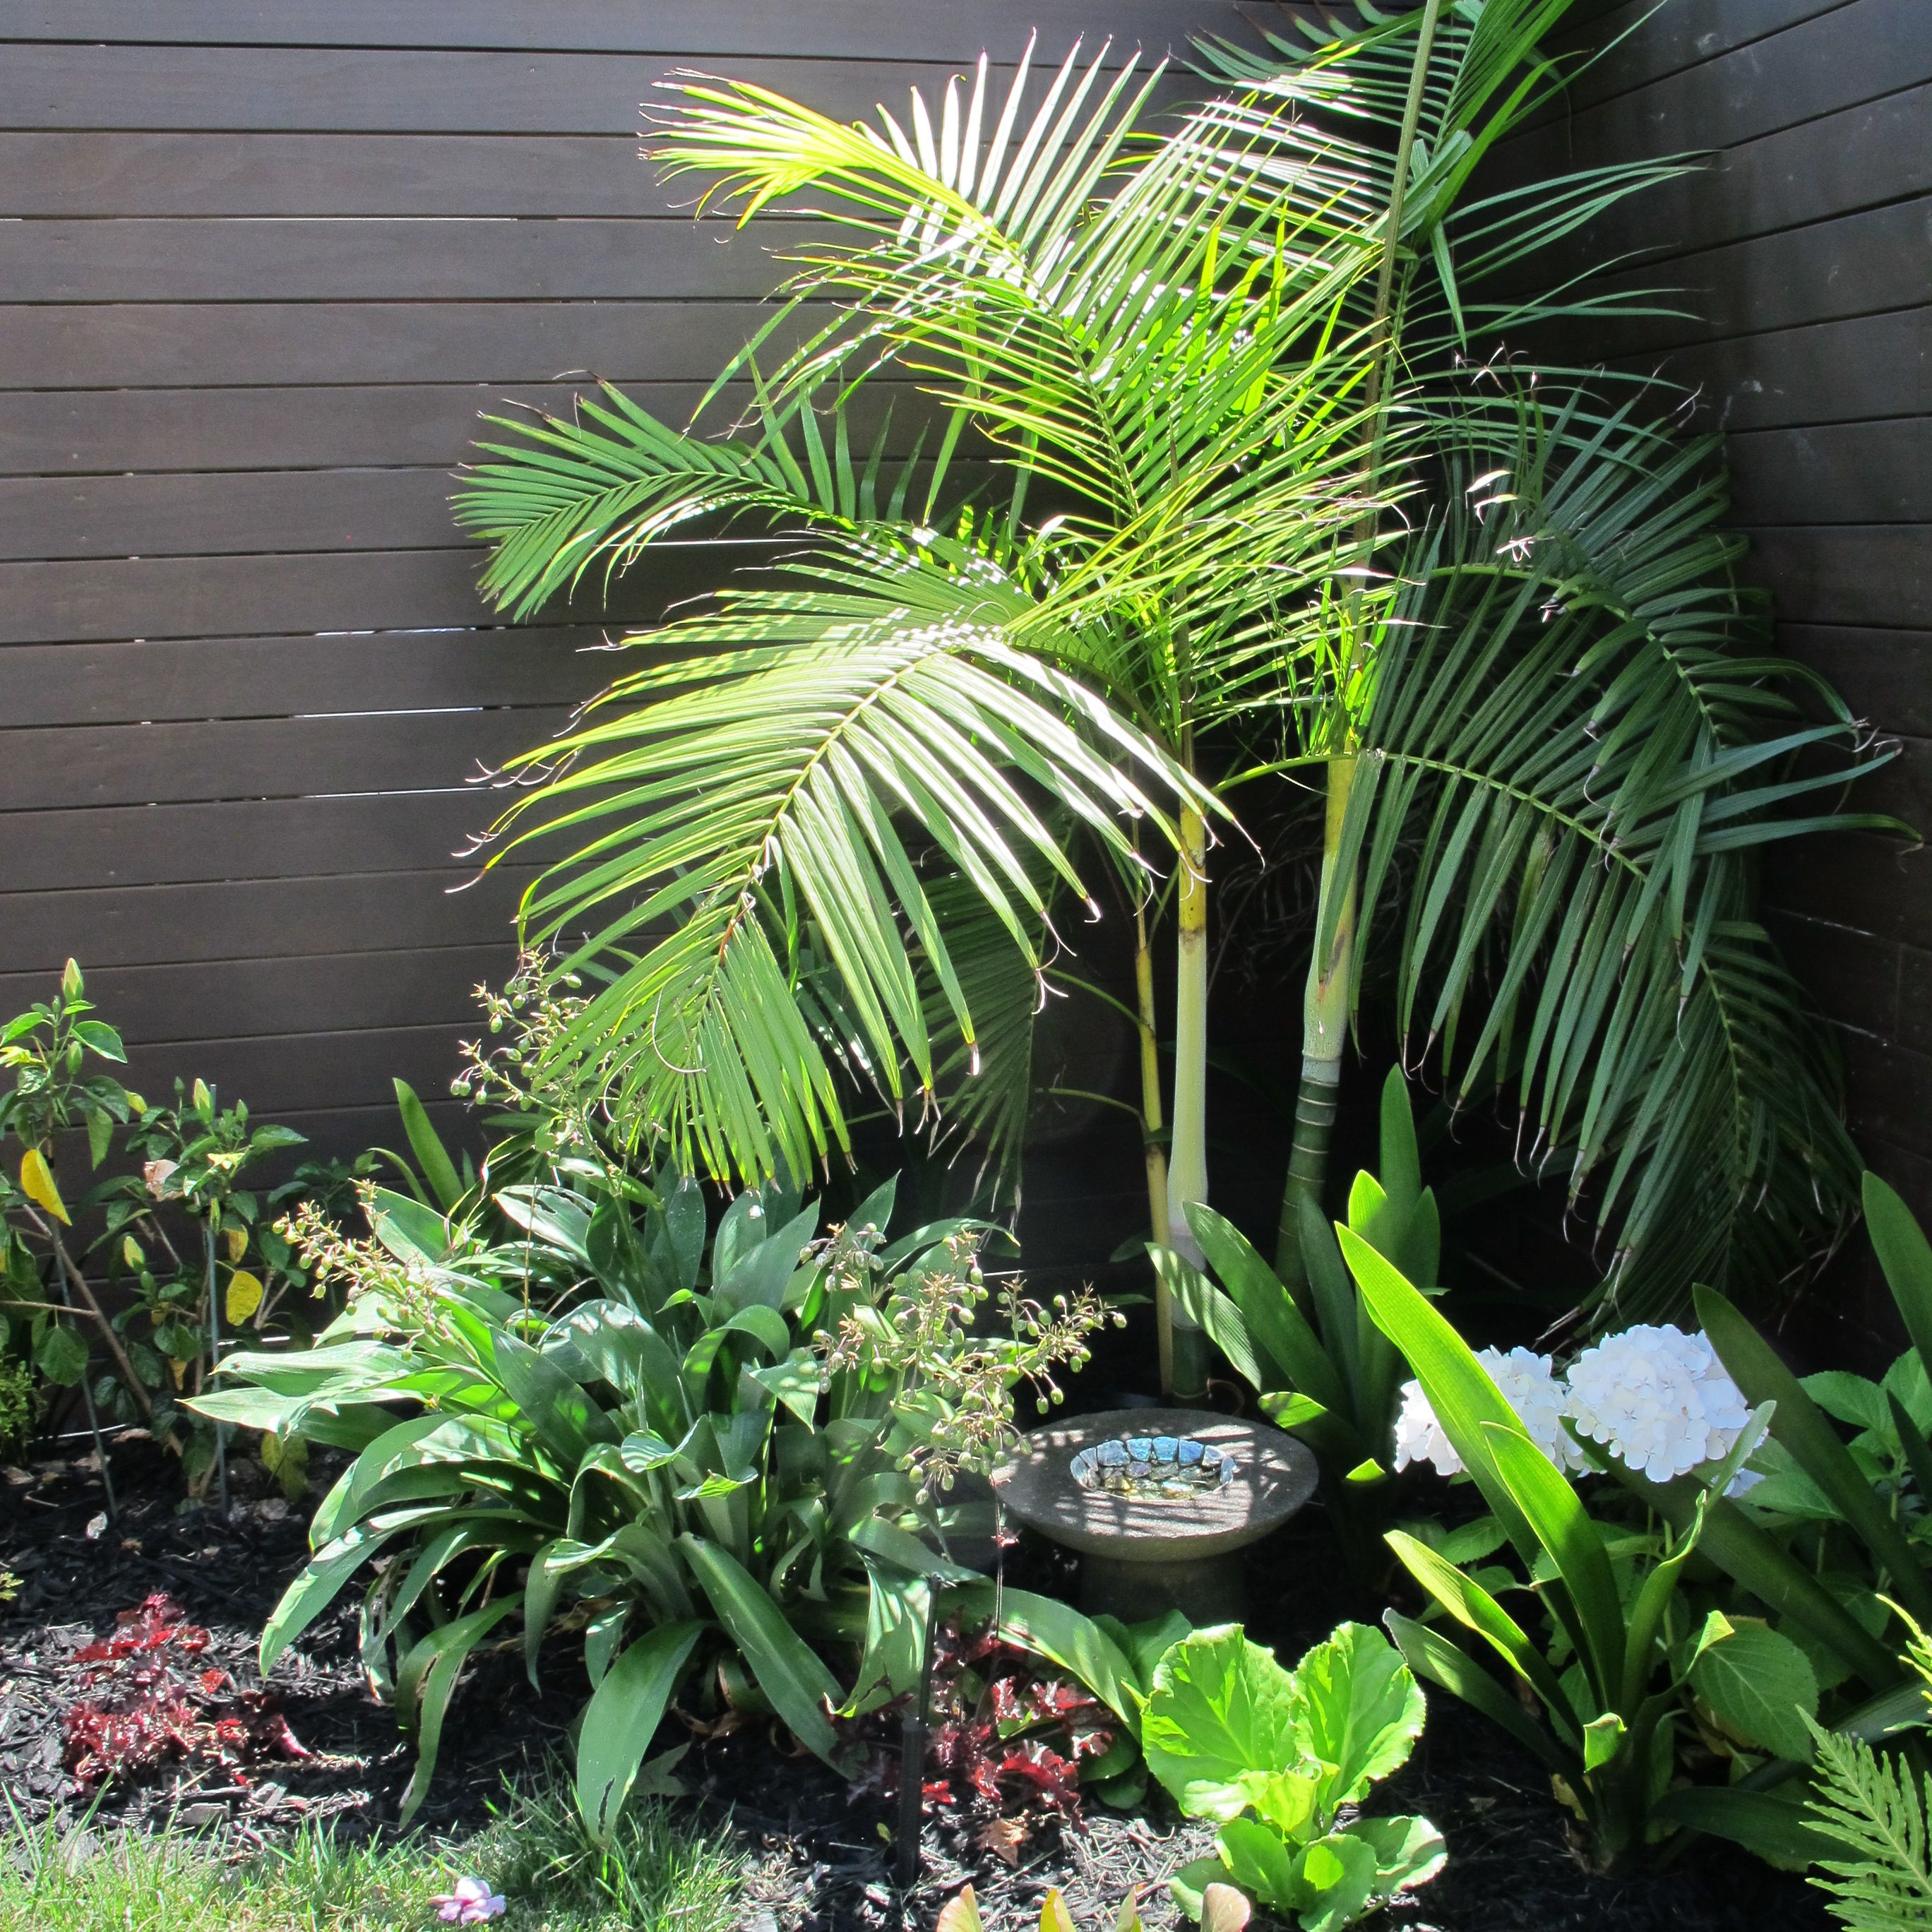 Dypsis Baronii, A Small Multi Trunked Palm Cultivated In A New Zealand  Garden With Native Rengarenga Lily (Arthropodium Cirratum), Clivia And  Hydrangea ...